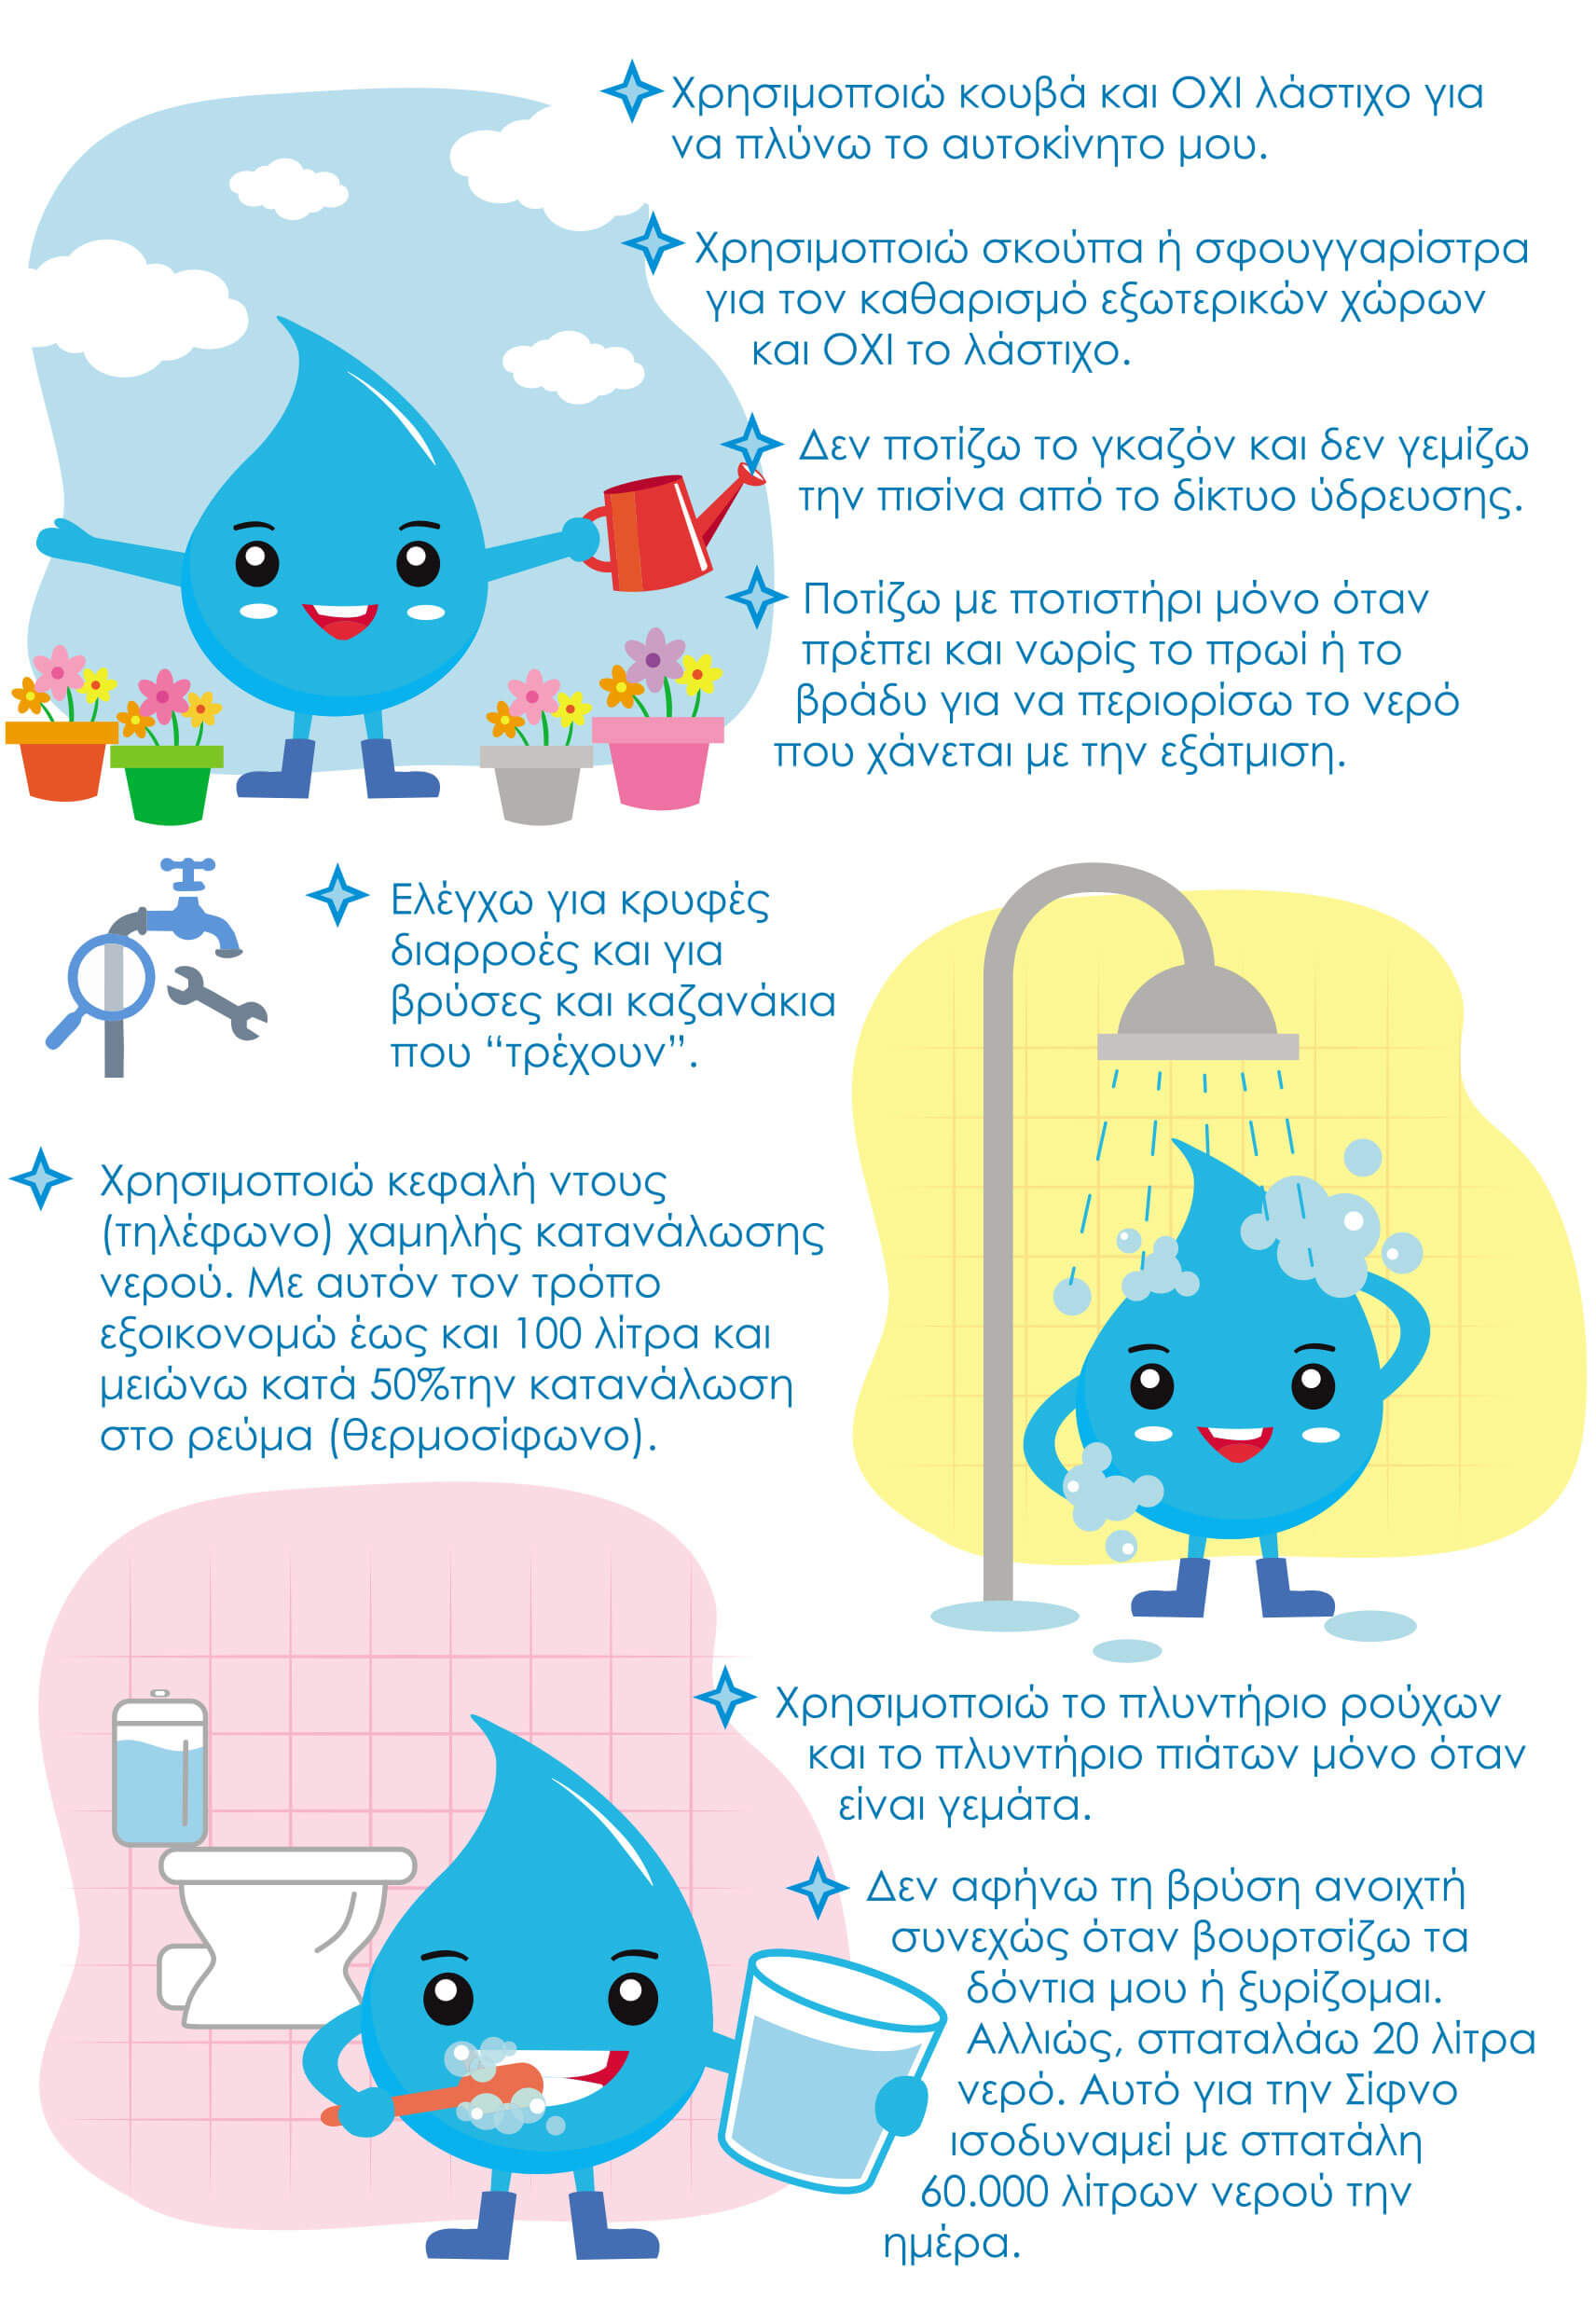 save-water-gr-2